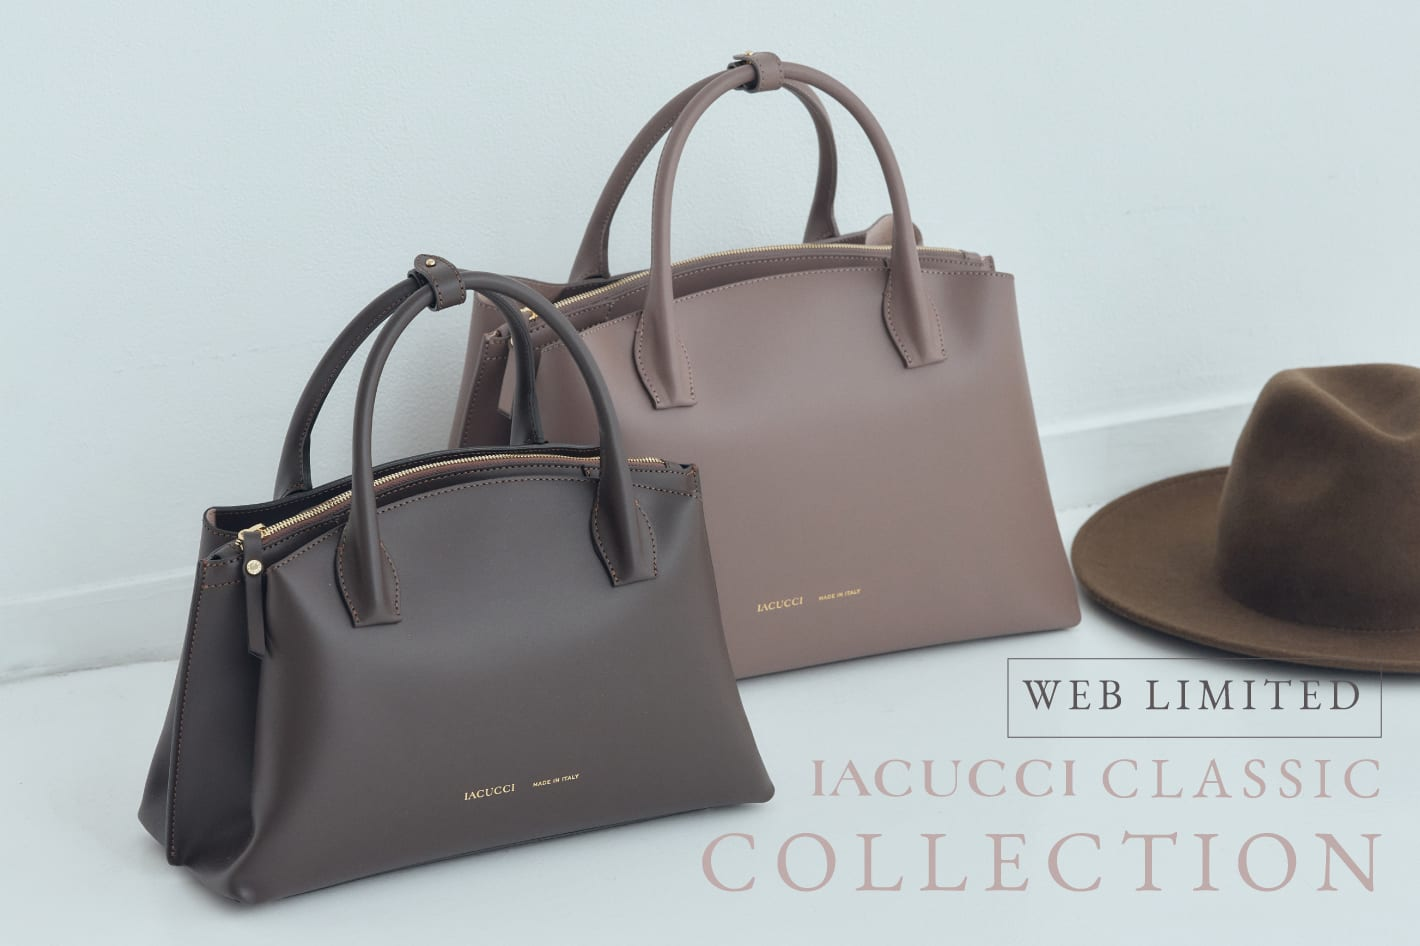 IACUCCI CLASSIC COLLECTION debut!